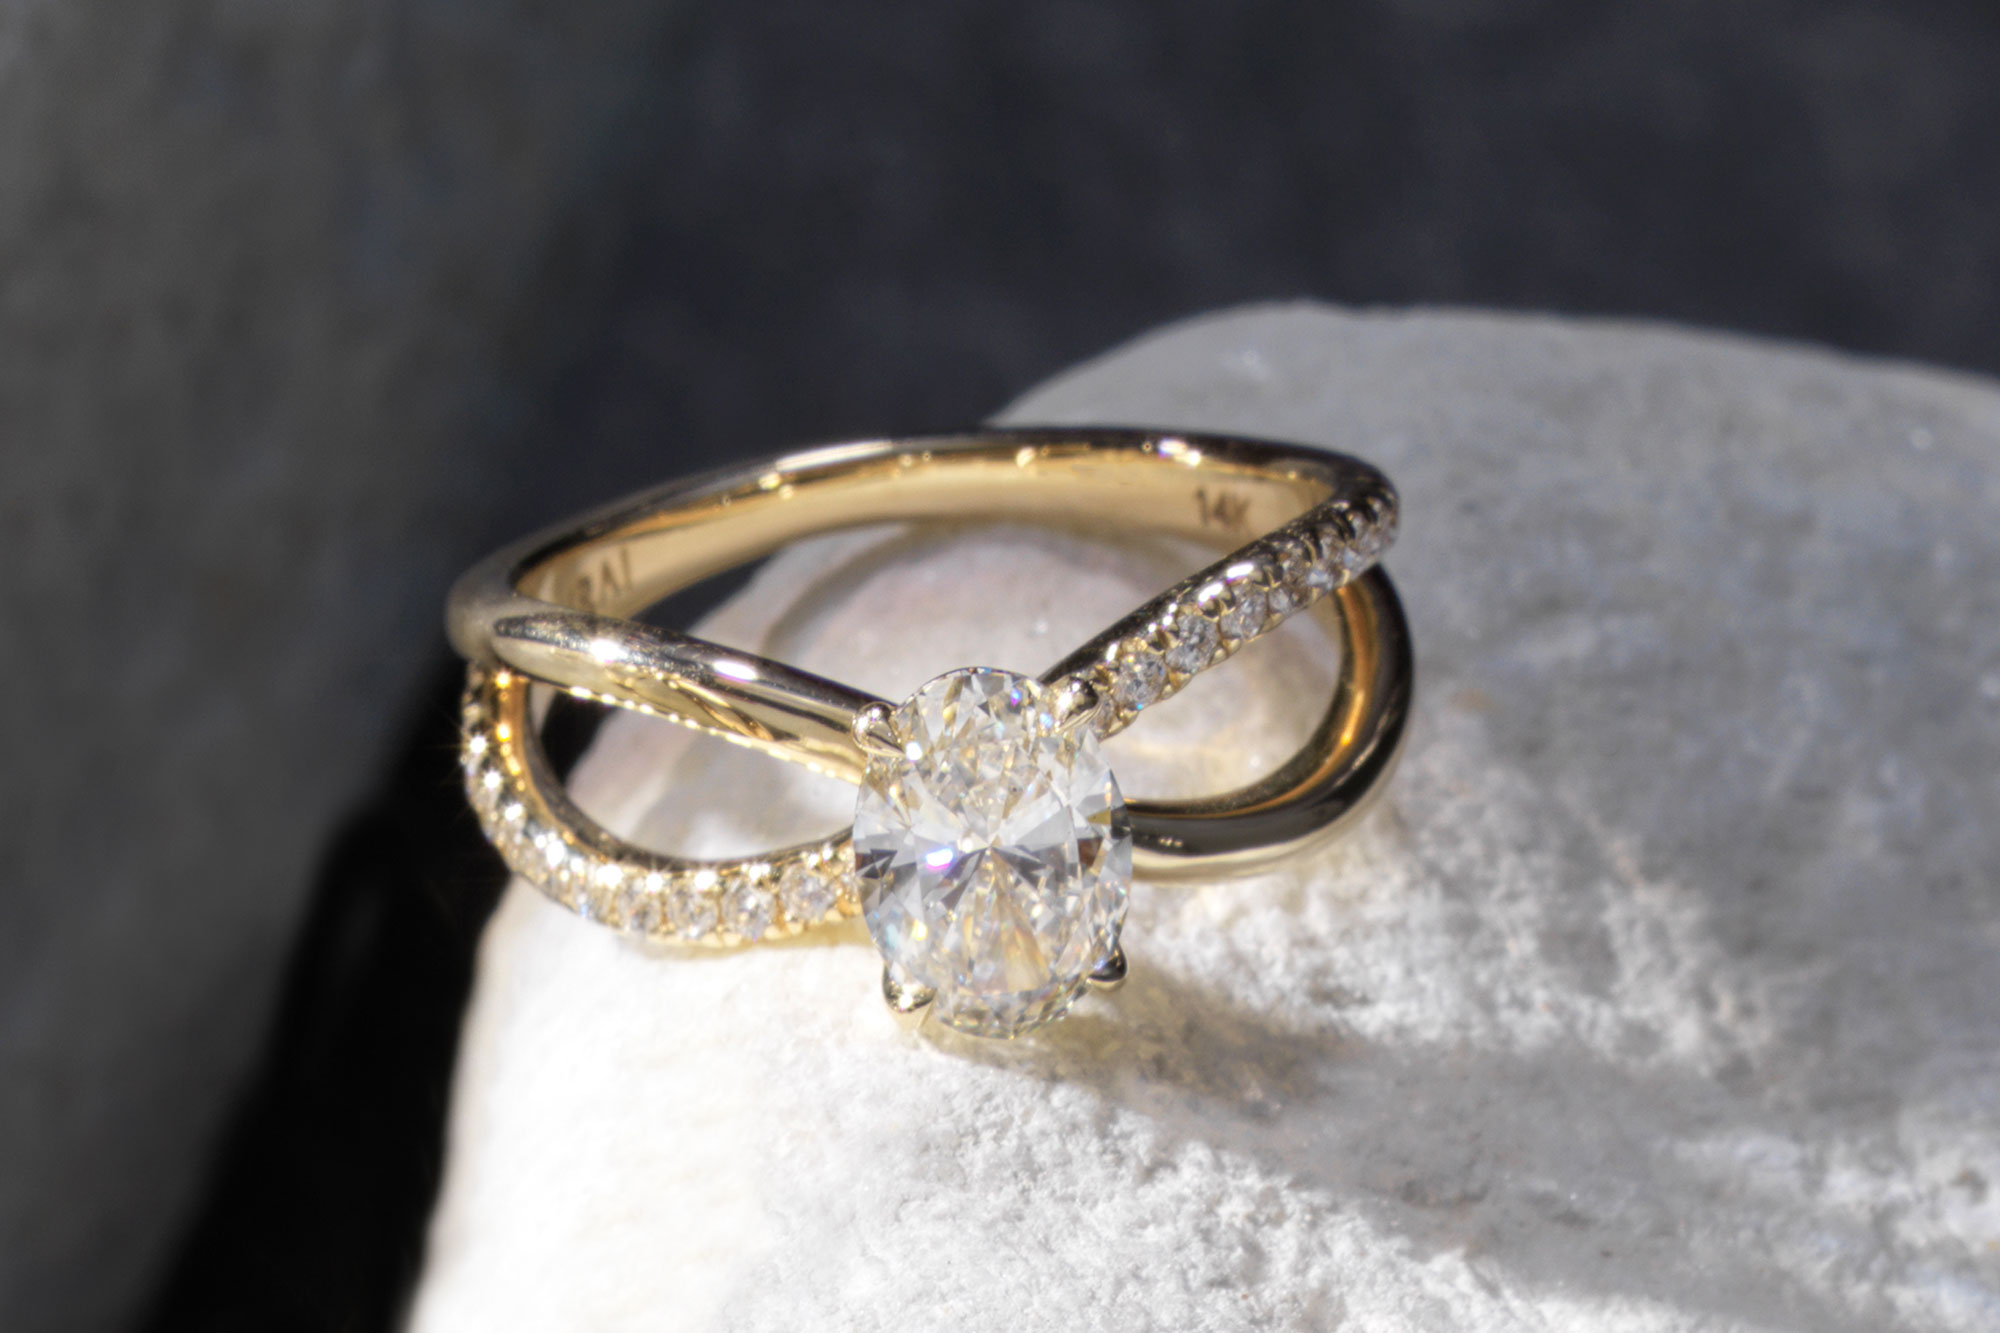 The oval duet engagement ring with yellow gold pave band